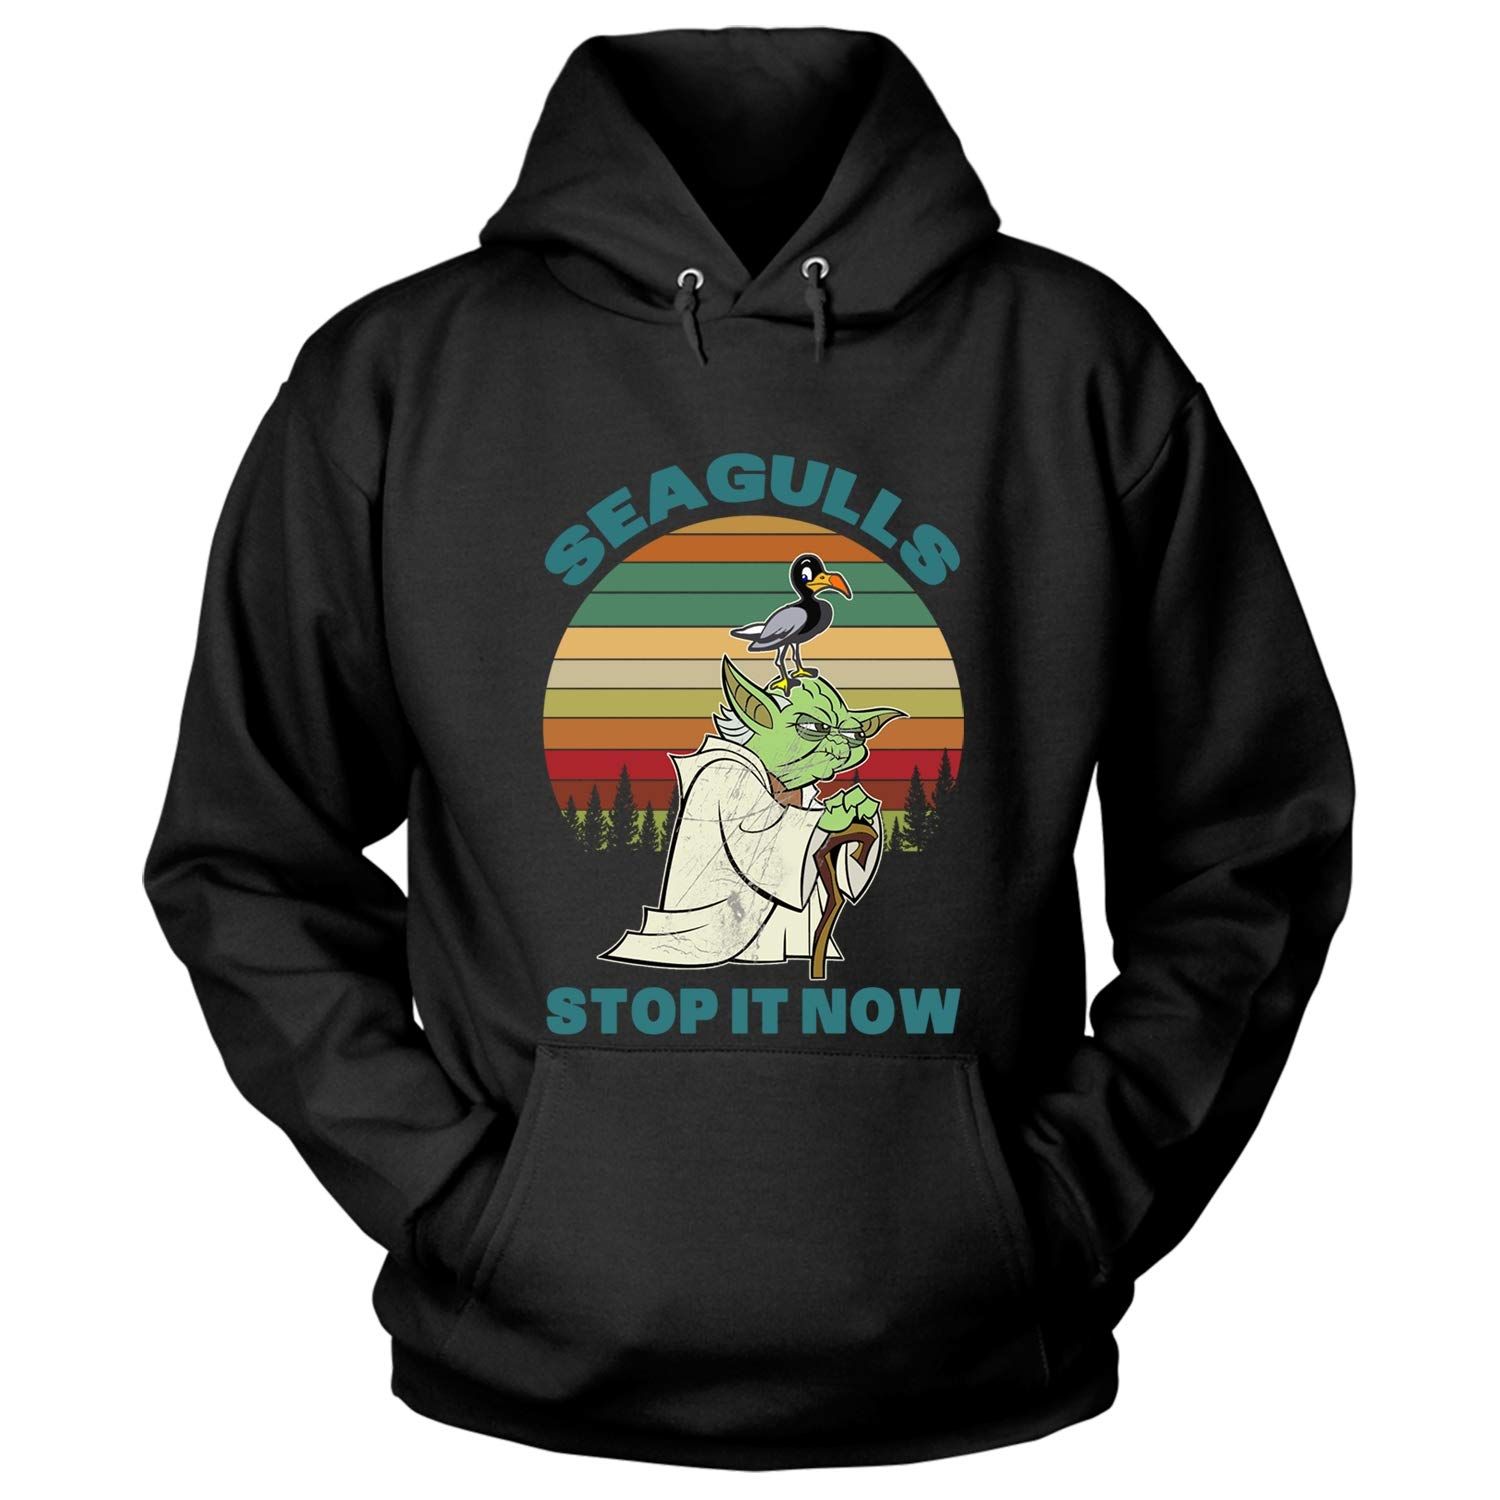 73884c60 Amazon.com: Seagulls Stop It Now SHirt, A Bad Lip Reading of The Empire  Strikes Back Shirt - Hoodie: Clothing